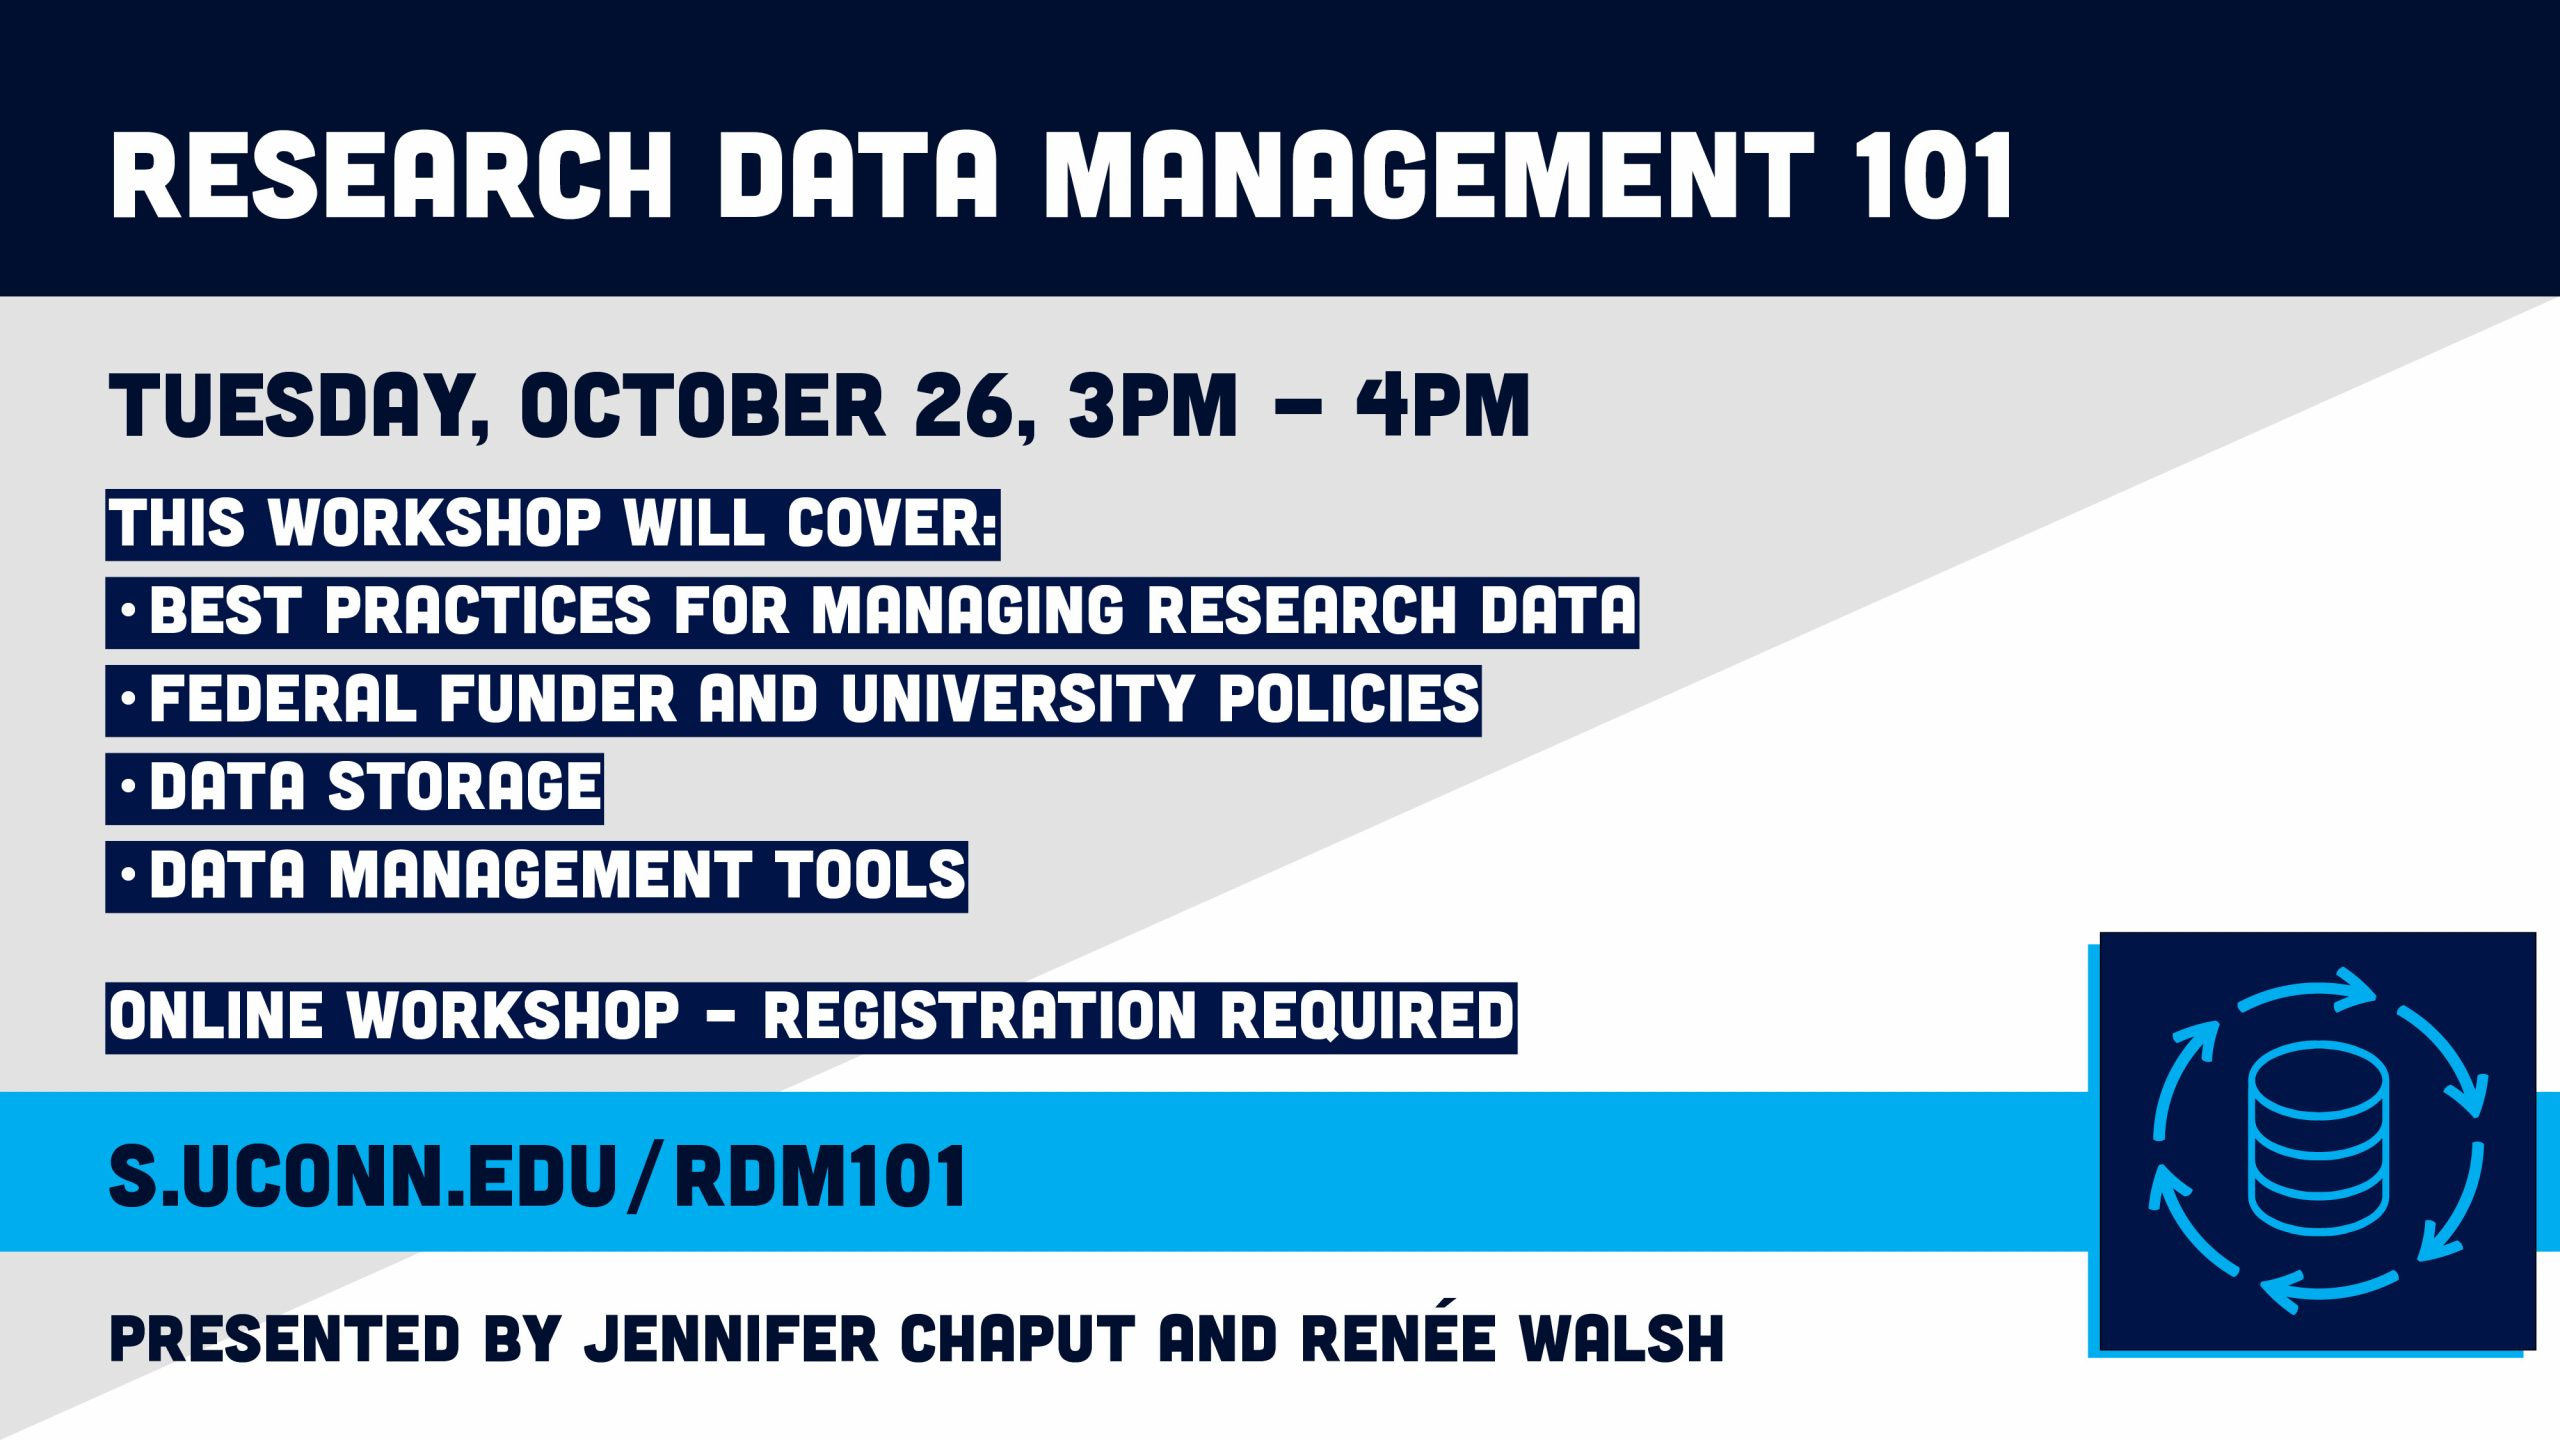 Research Data Management 101 Tuesday, October 26, 3pm - 4pm This workshop will cover: •best practices for managing research data •federal funder and university policies •data storage •data management tools Online Workshop – Registration required. s.uconn.edu/rdm101. Presented by Jennifer Chaput and Renée Walsh.